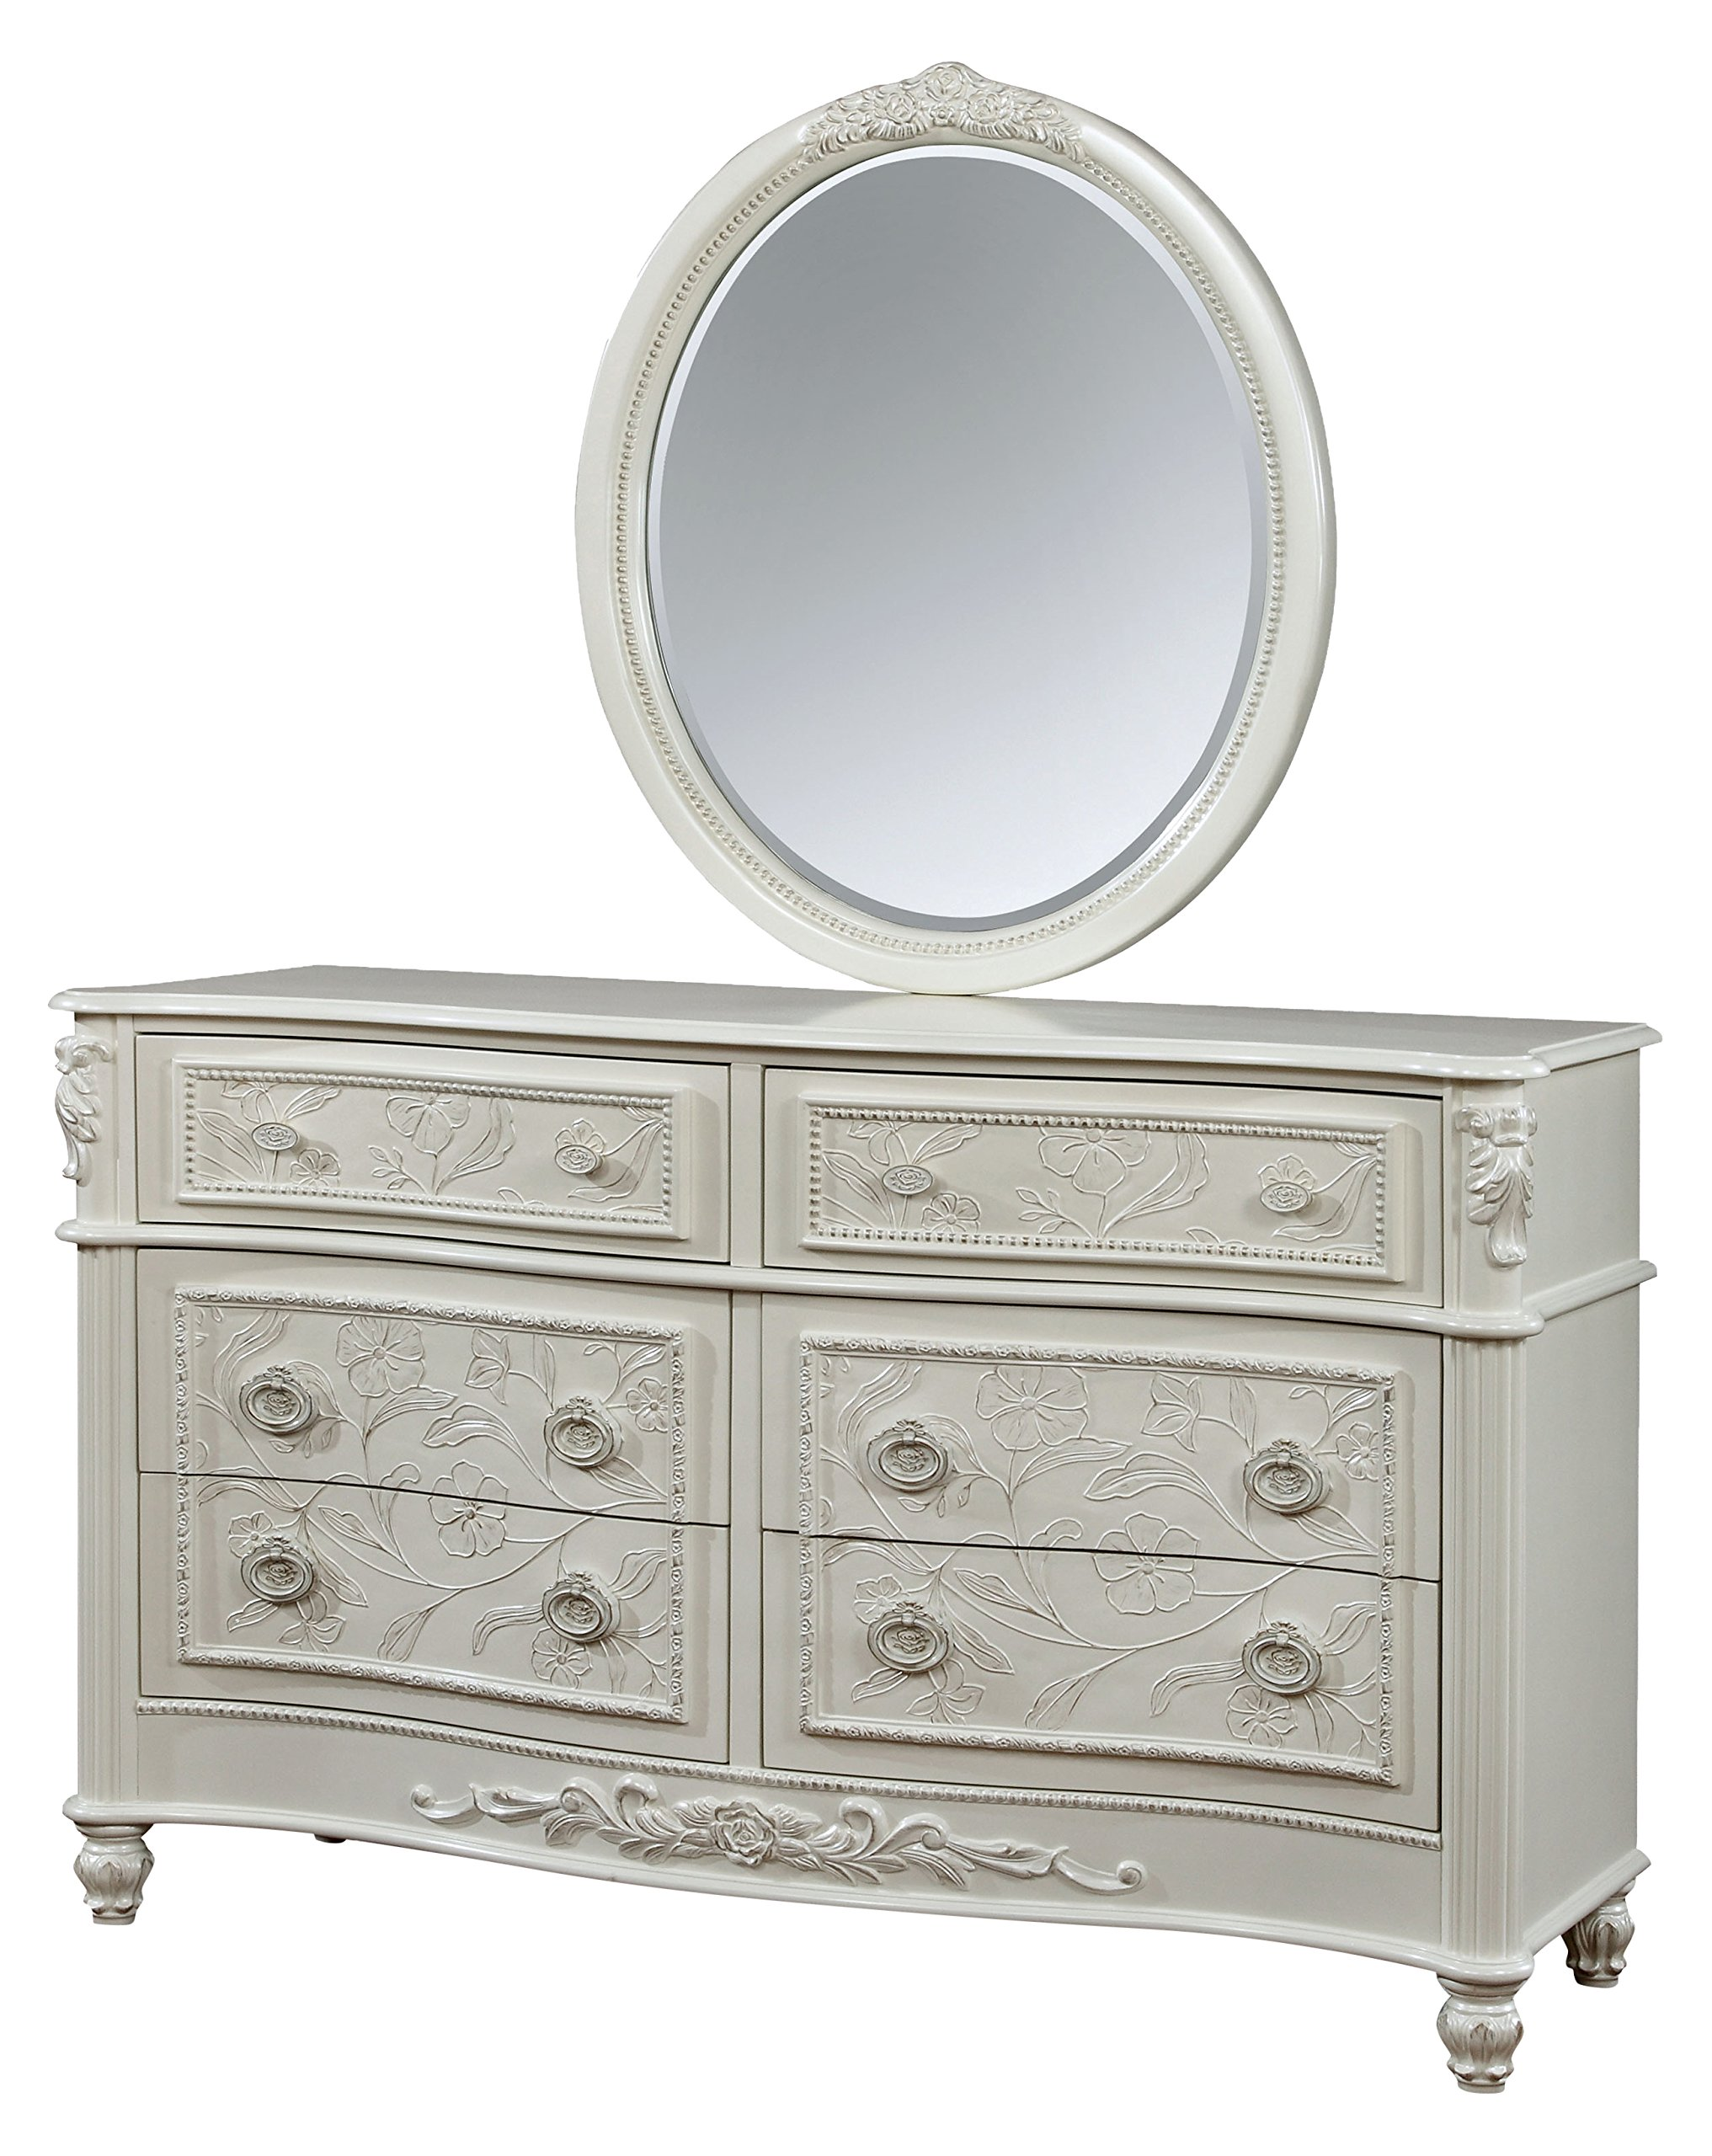 HOMES: Inside + Out IDF-7192-DM Raegon Dresser Mirror Childrens